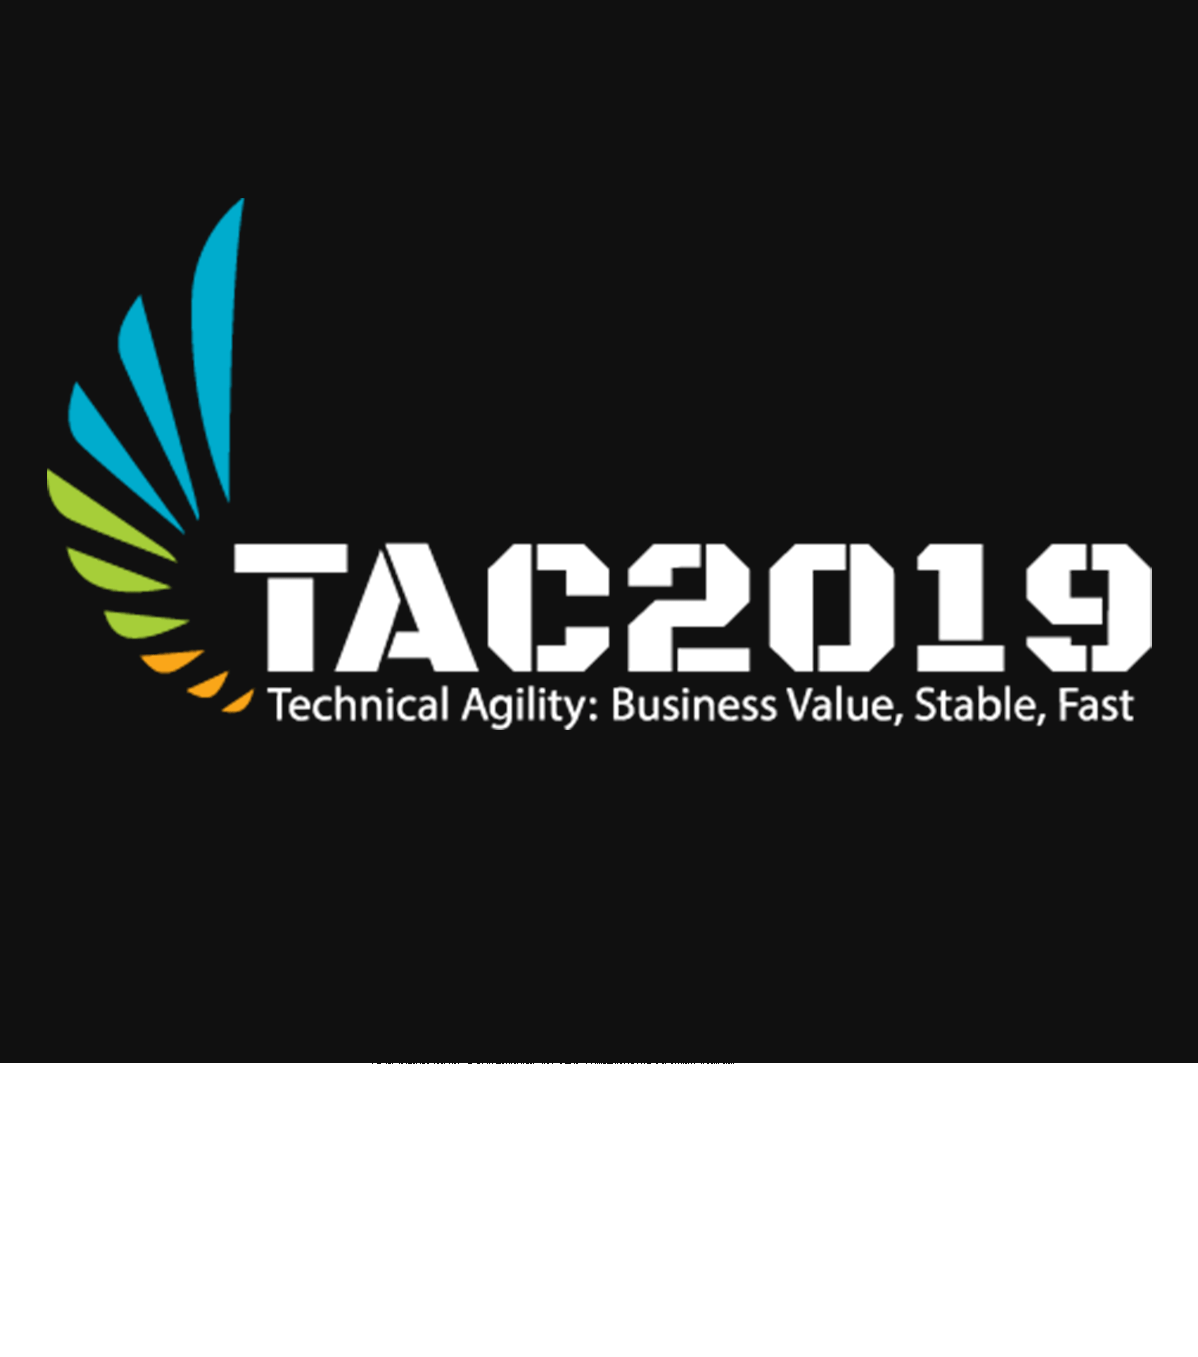 Technical Agility Conference